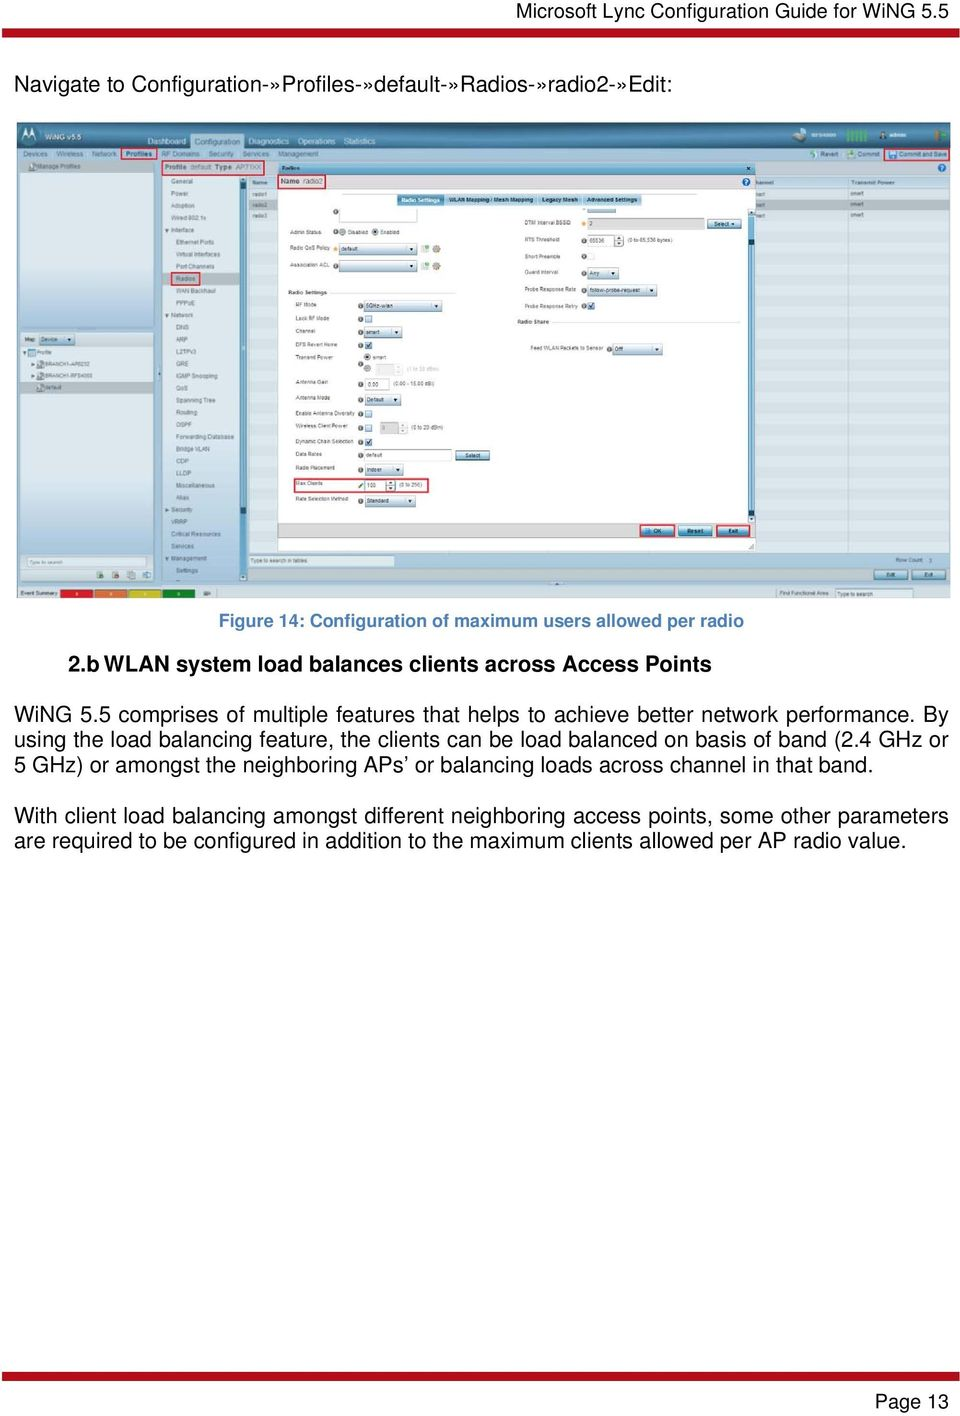 By using the load balancing feature, the clients can be load balanced on basis of band (2.